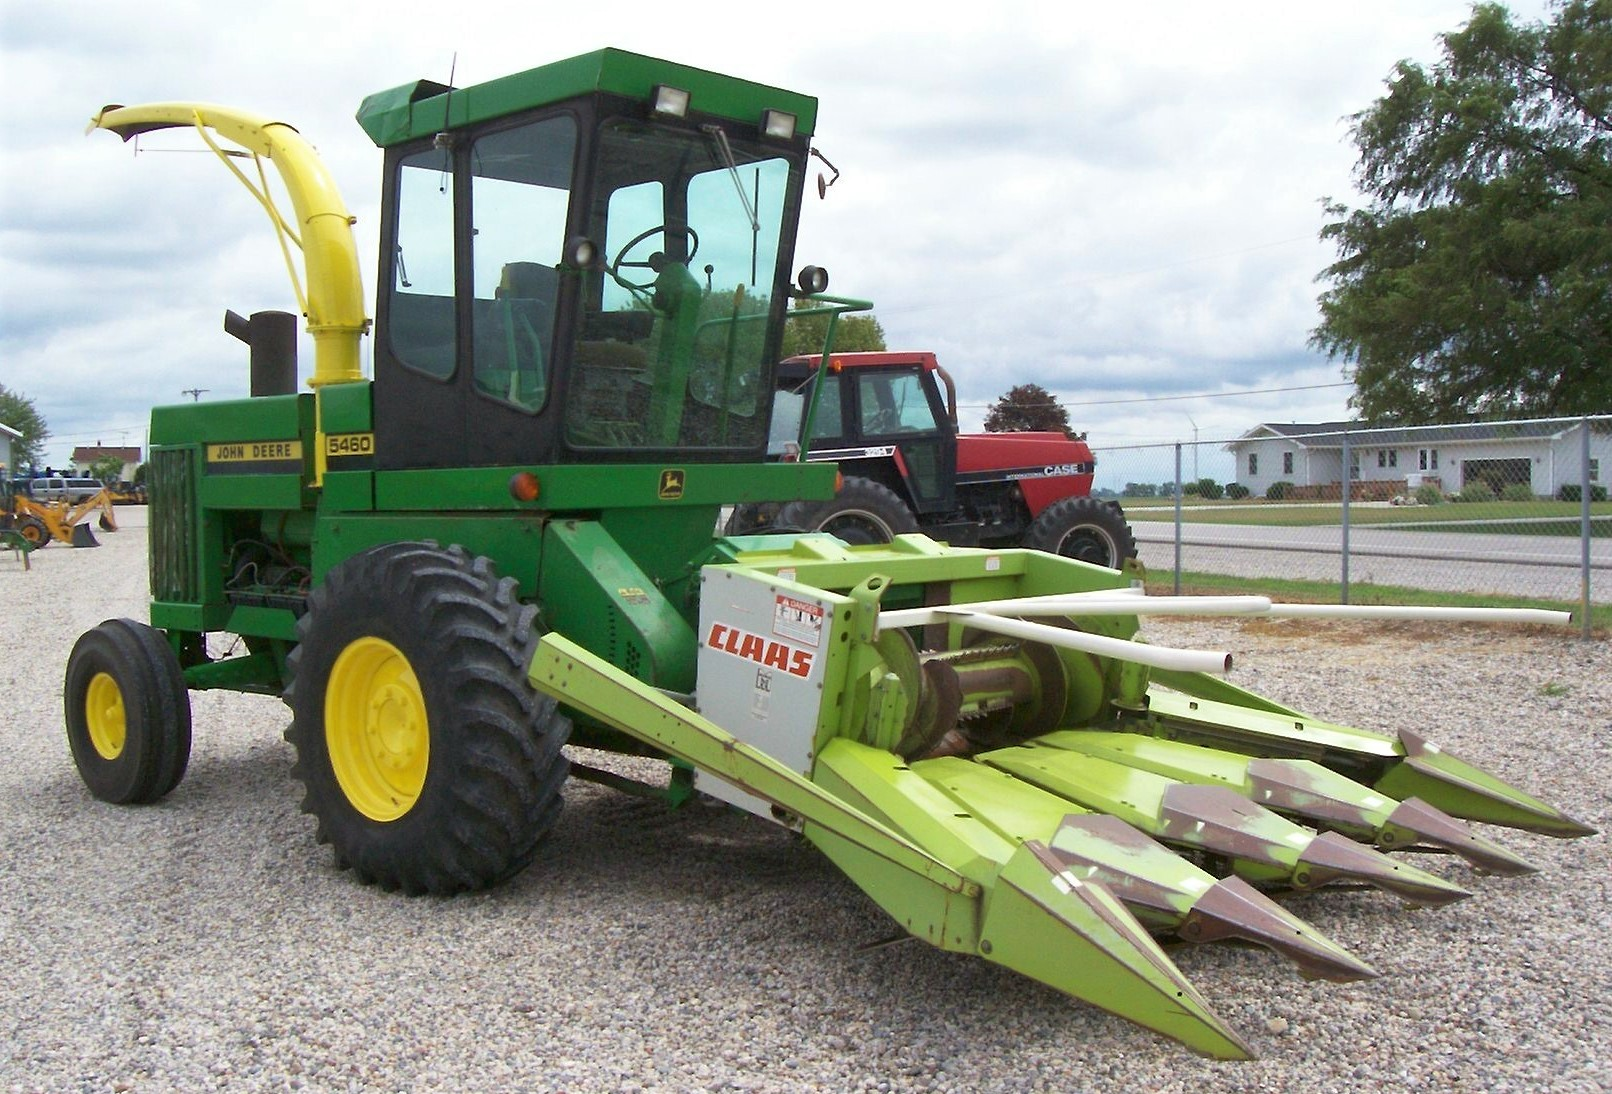 Nostalgia Where Did John Deere Self Propelled Foragers Come From Combine Box Fuse Image Source Greenfarmmobi